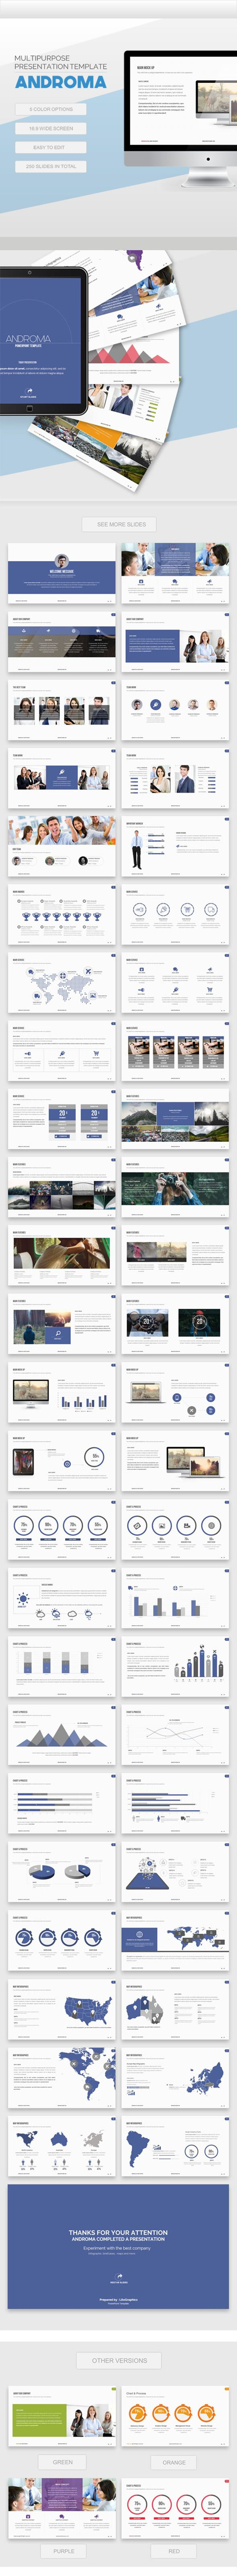 Androma – Powerpoint Template (PowerPoint Templates) - Stunning Resources for designers - OrTheme